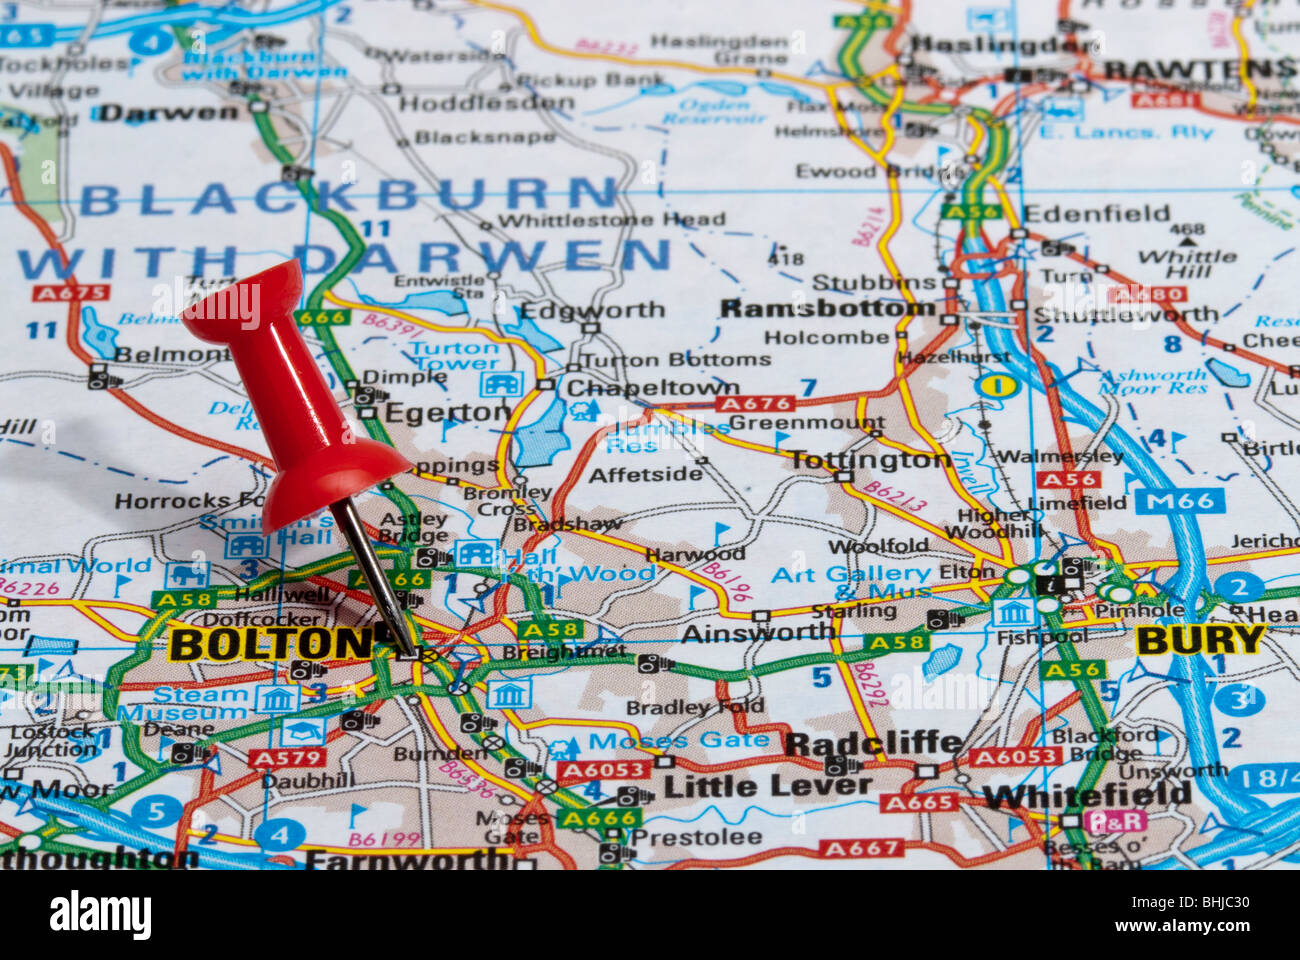 red map pin in road map pointing to city of Bolton - Stock Image